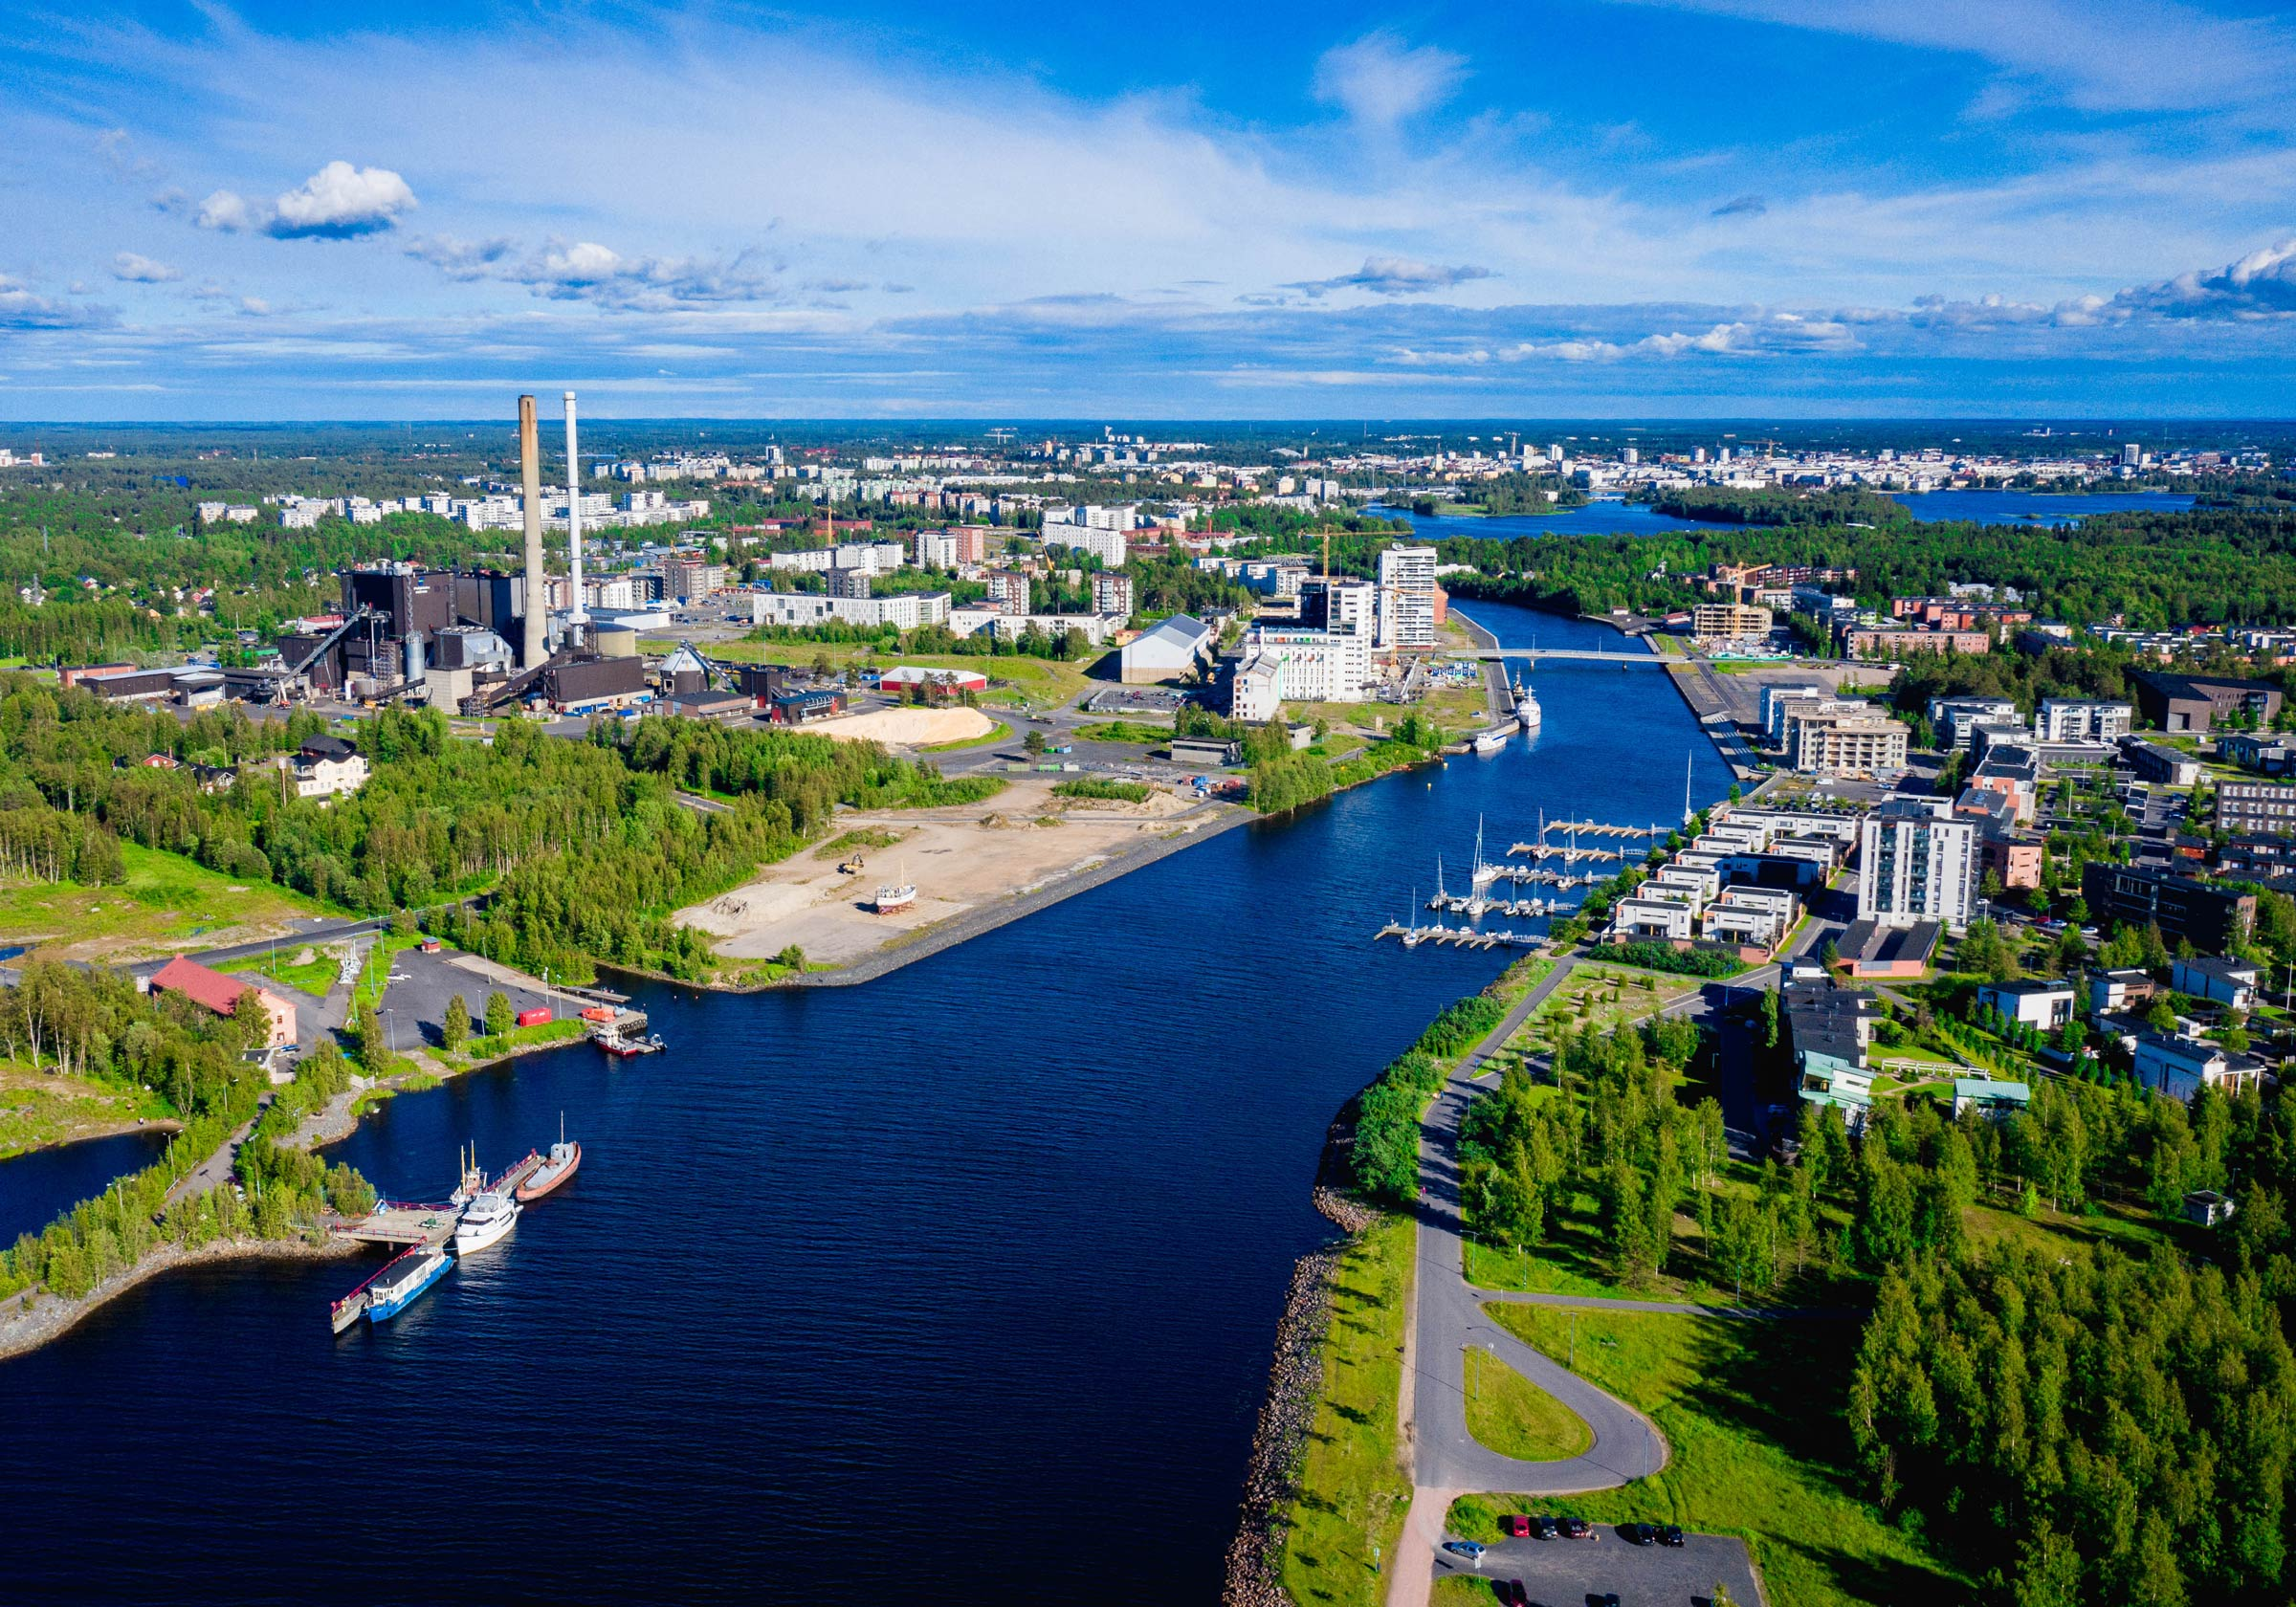 An aerial view of the city of Oulu in Finland